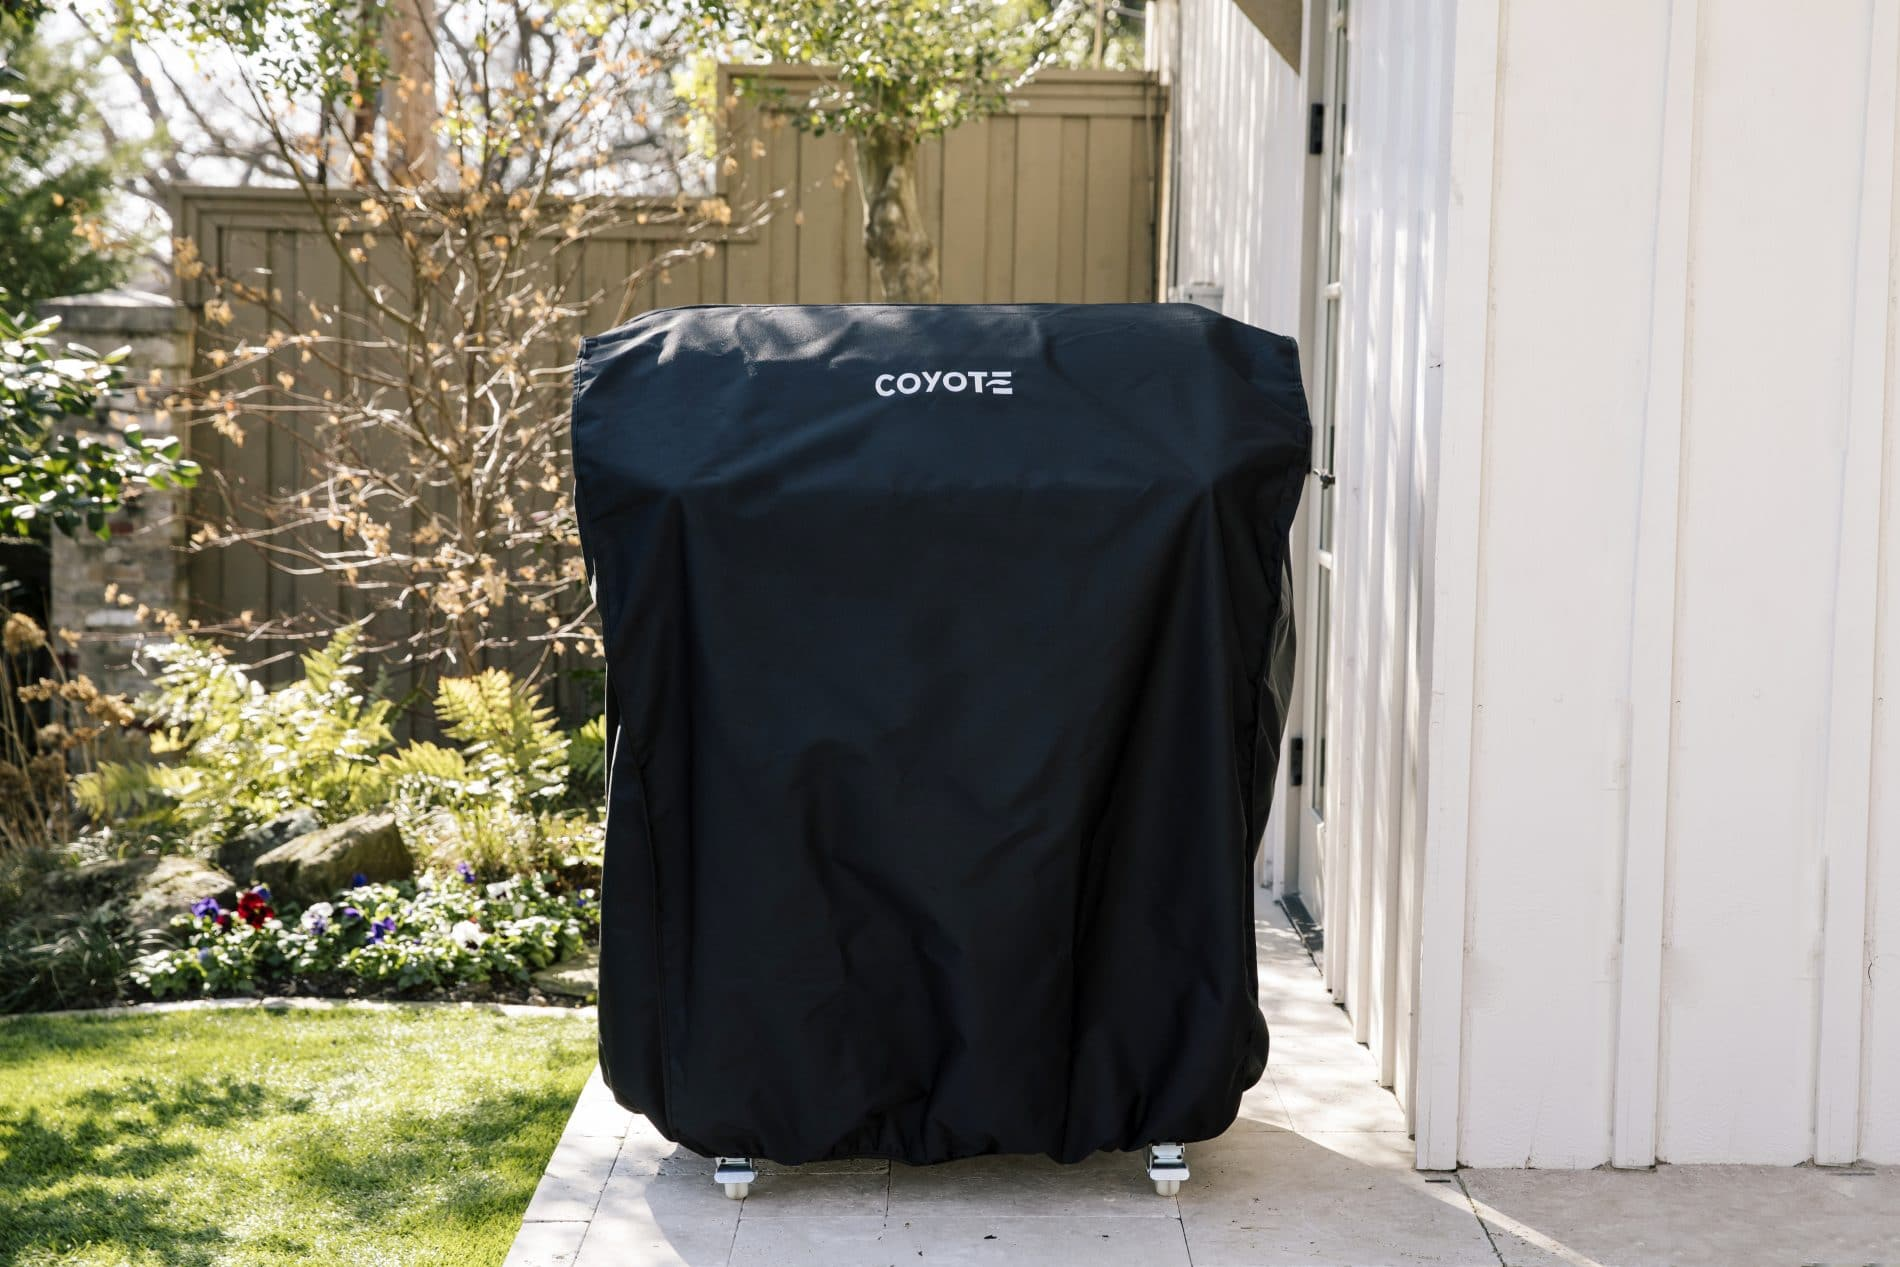 Coyote Outdoor accessory in Black color showcased by Corbeil Electro Store